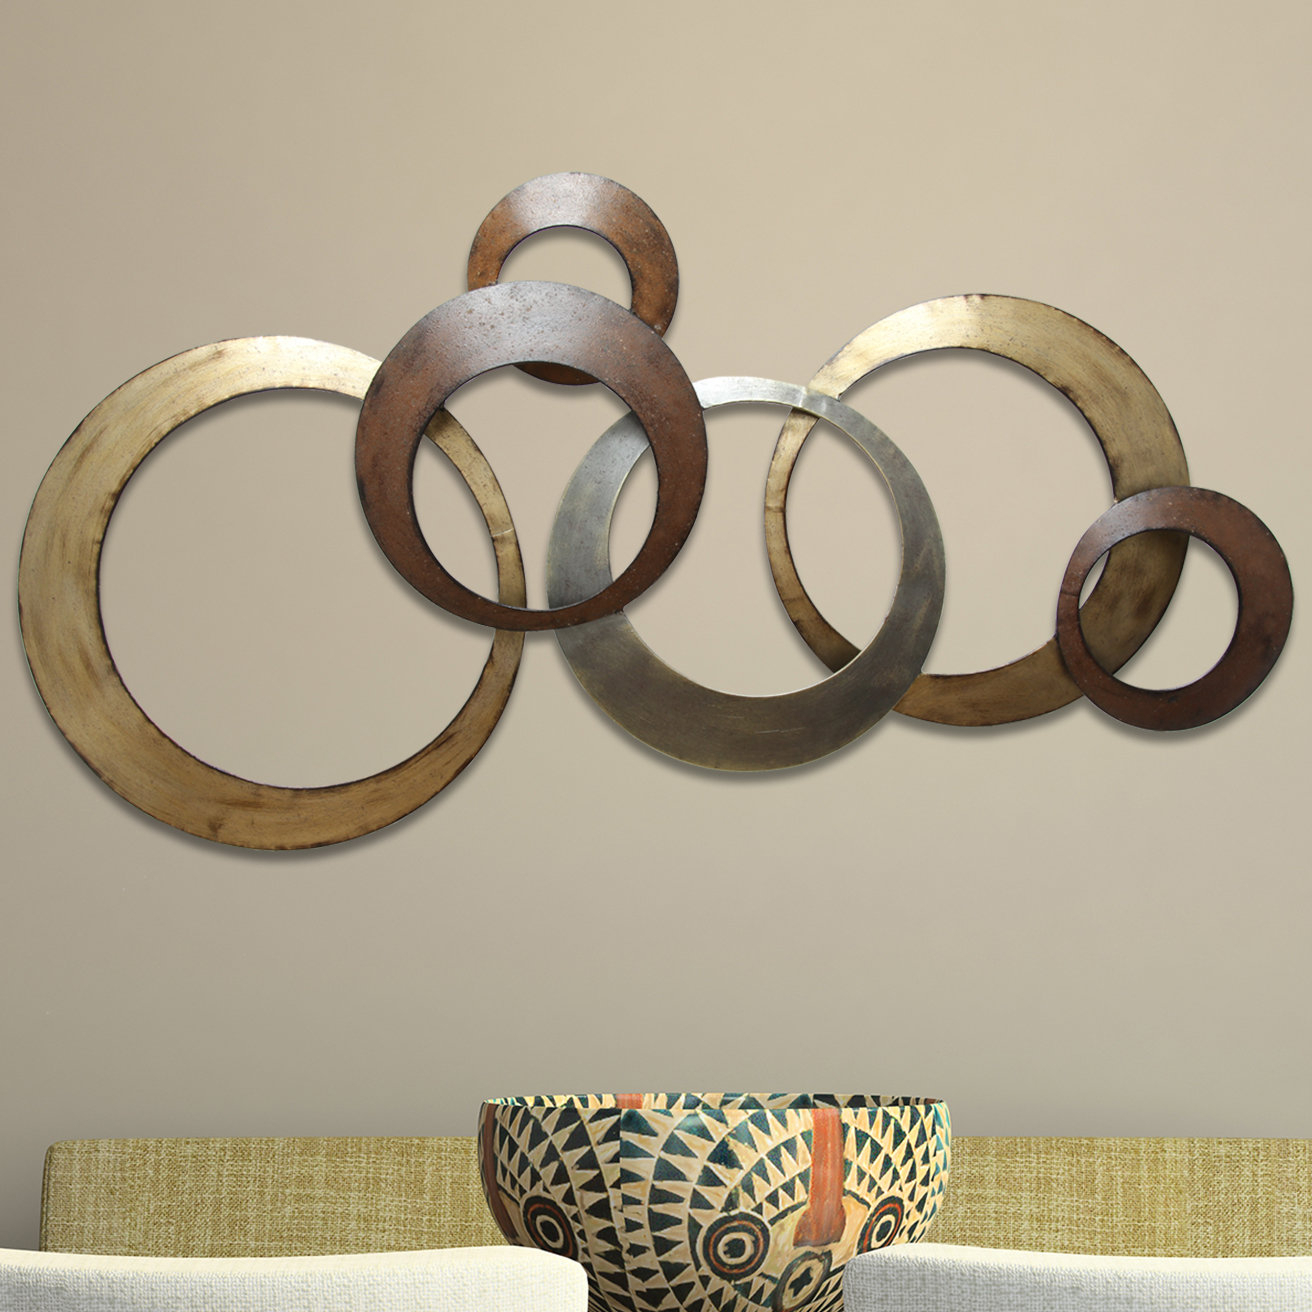 Preferred Rings Wall Decor Pertaining To Stratton Home Decor Rings Wall Décor & Reviews (View 4 of 20)